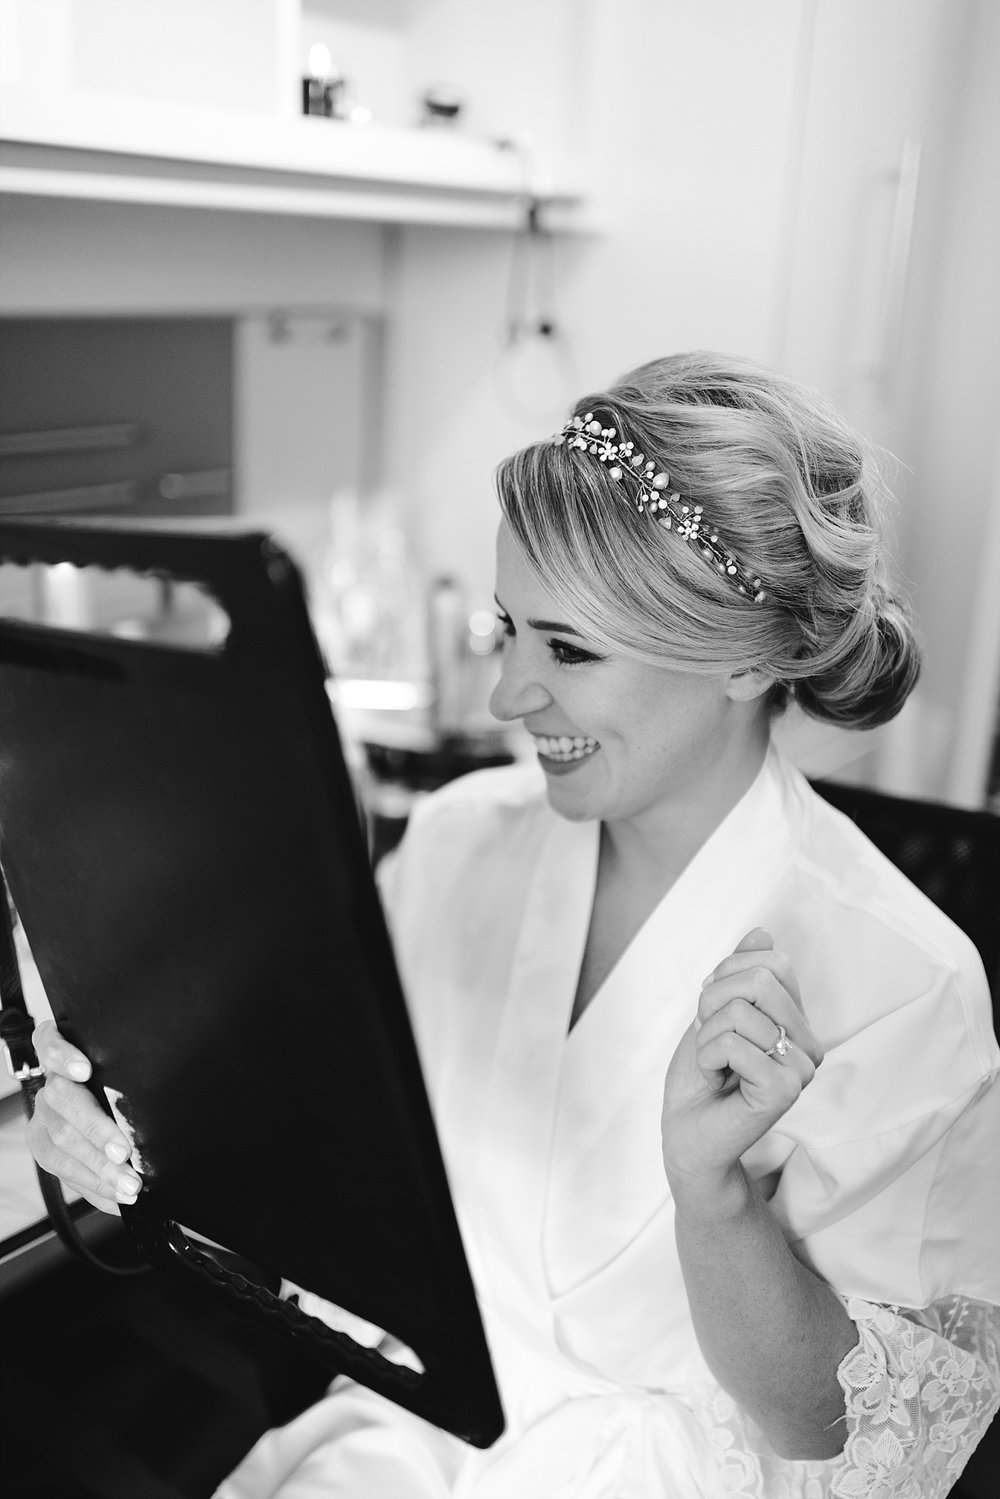 Glam bride updo bridal wedding details